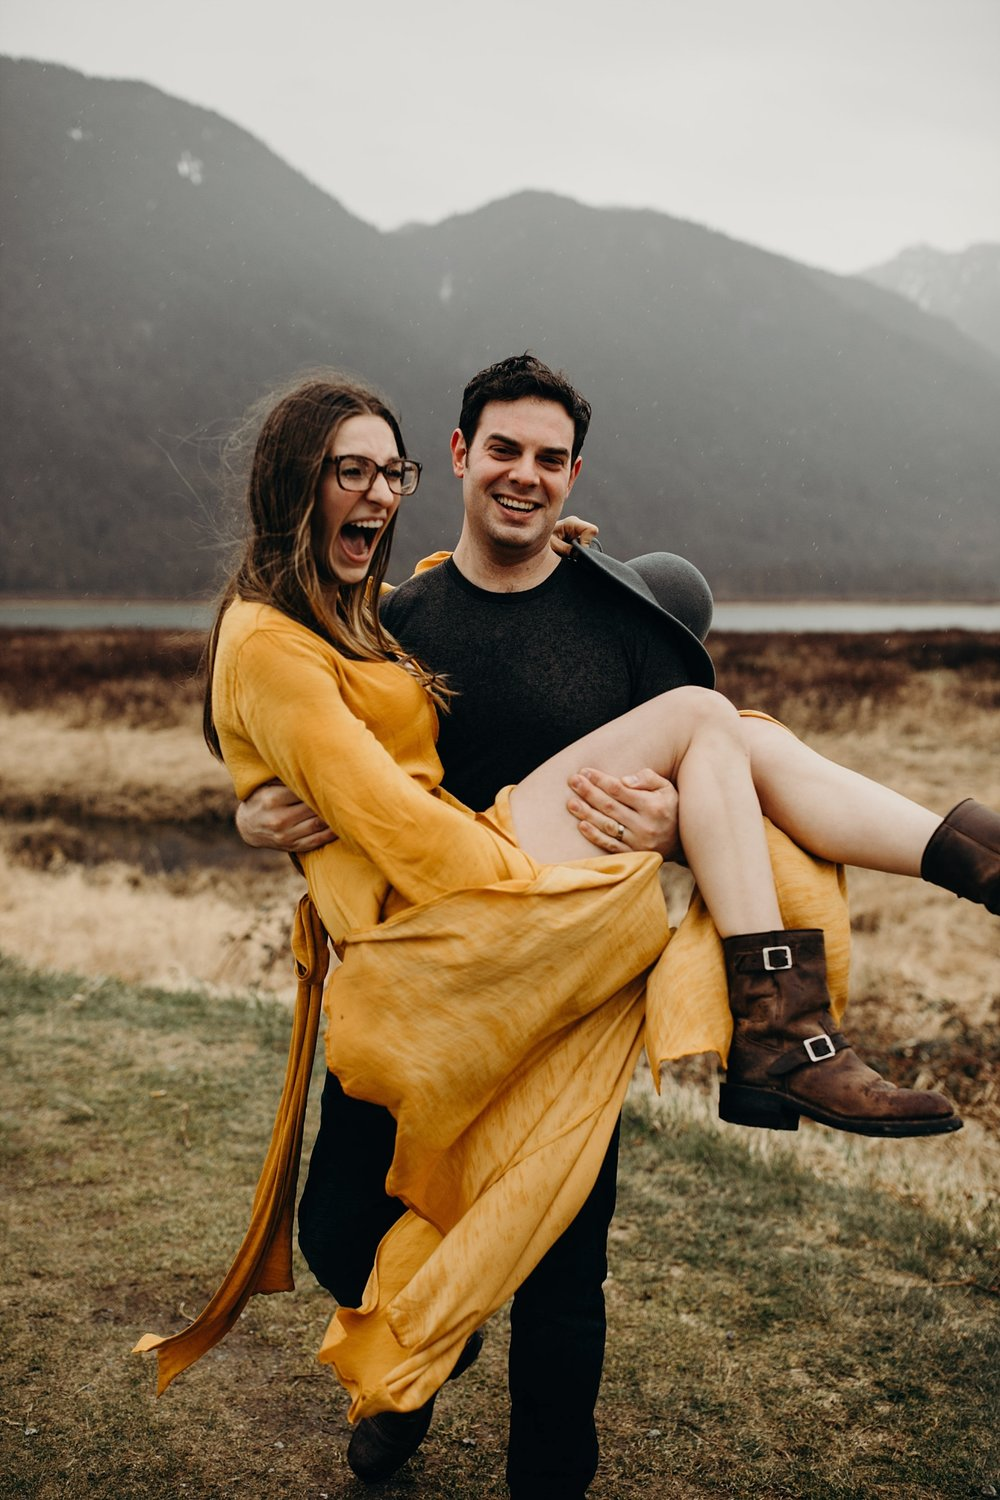 The McLachlans - Vancouver Wedding Photographers - Pitt Lake Engagements - Dan and Alleigra_0012.jpg